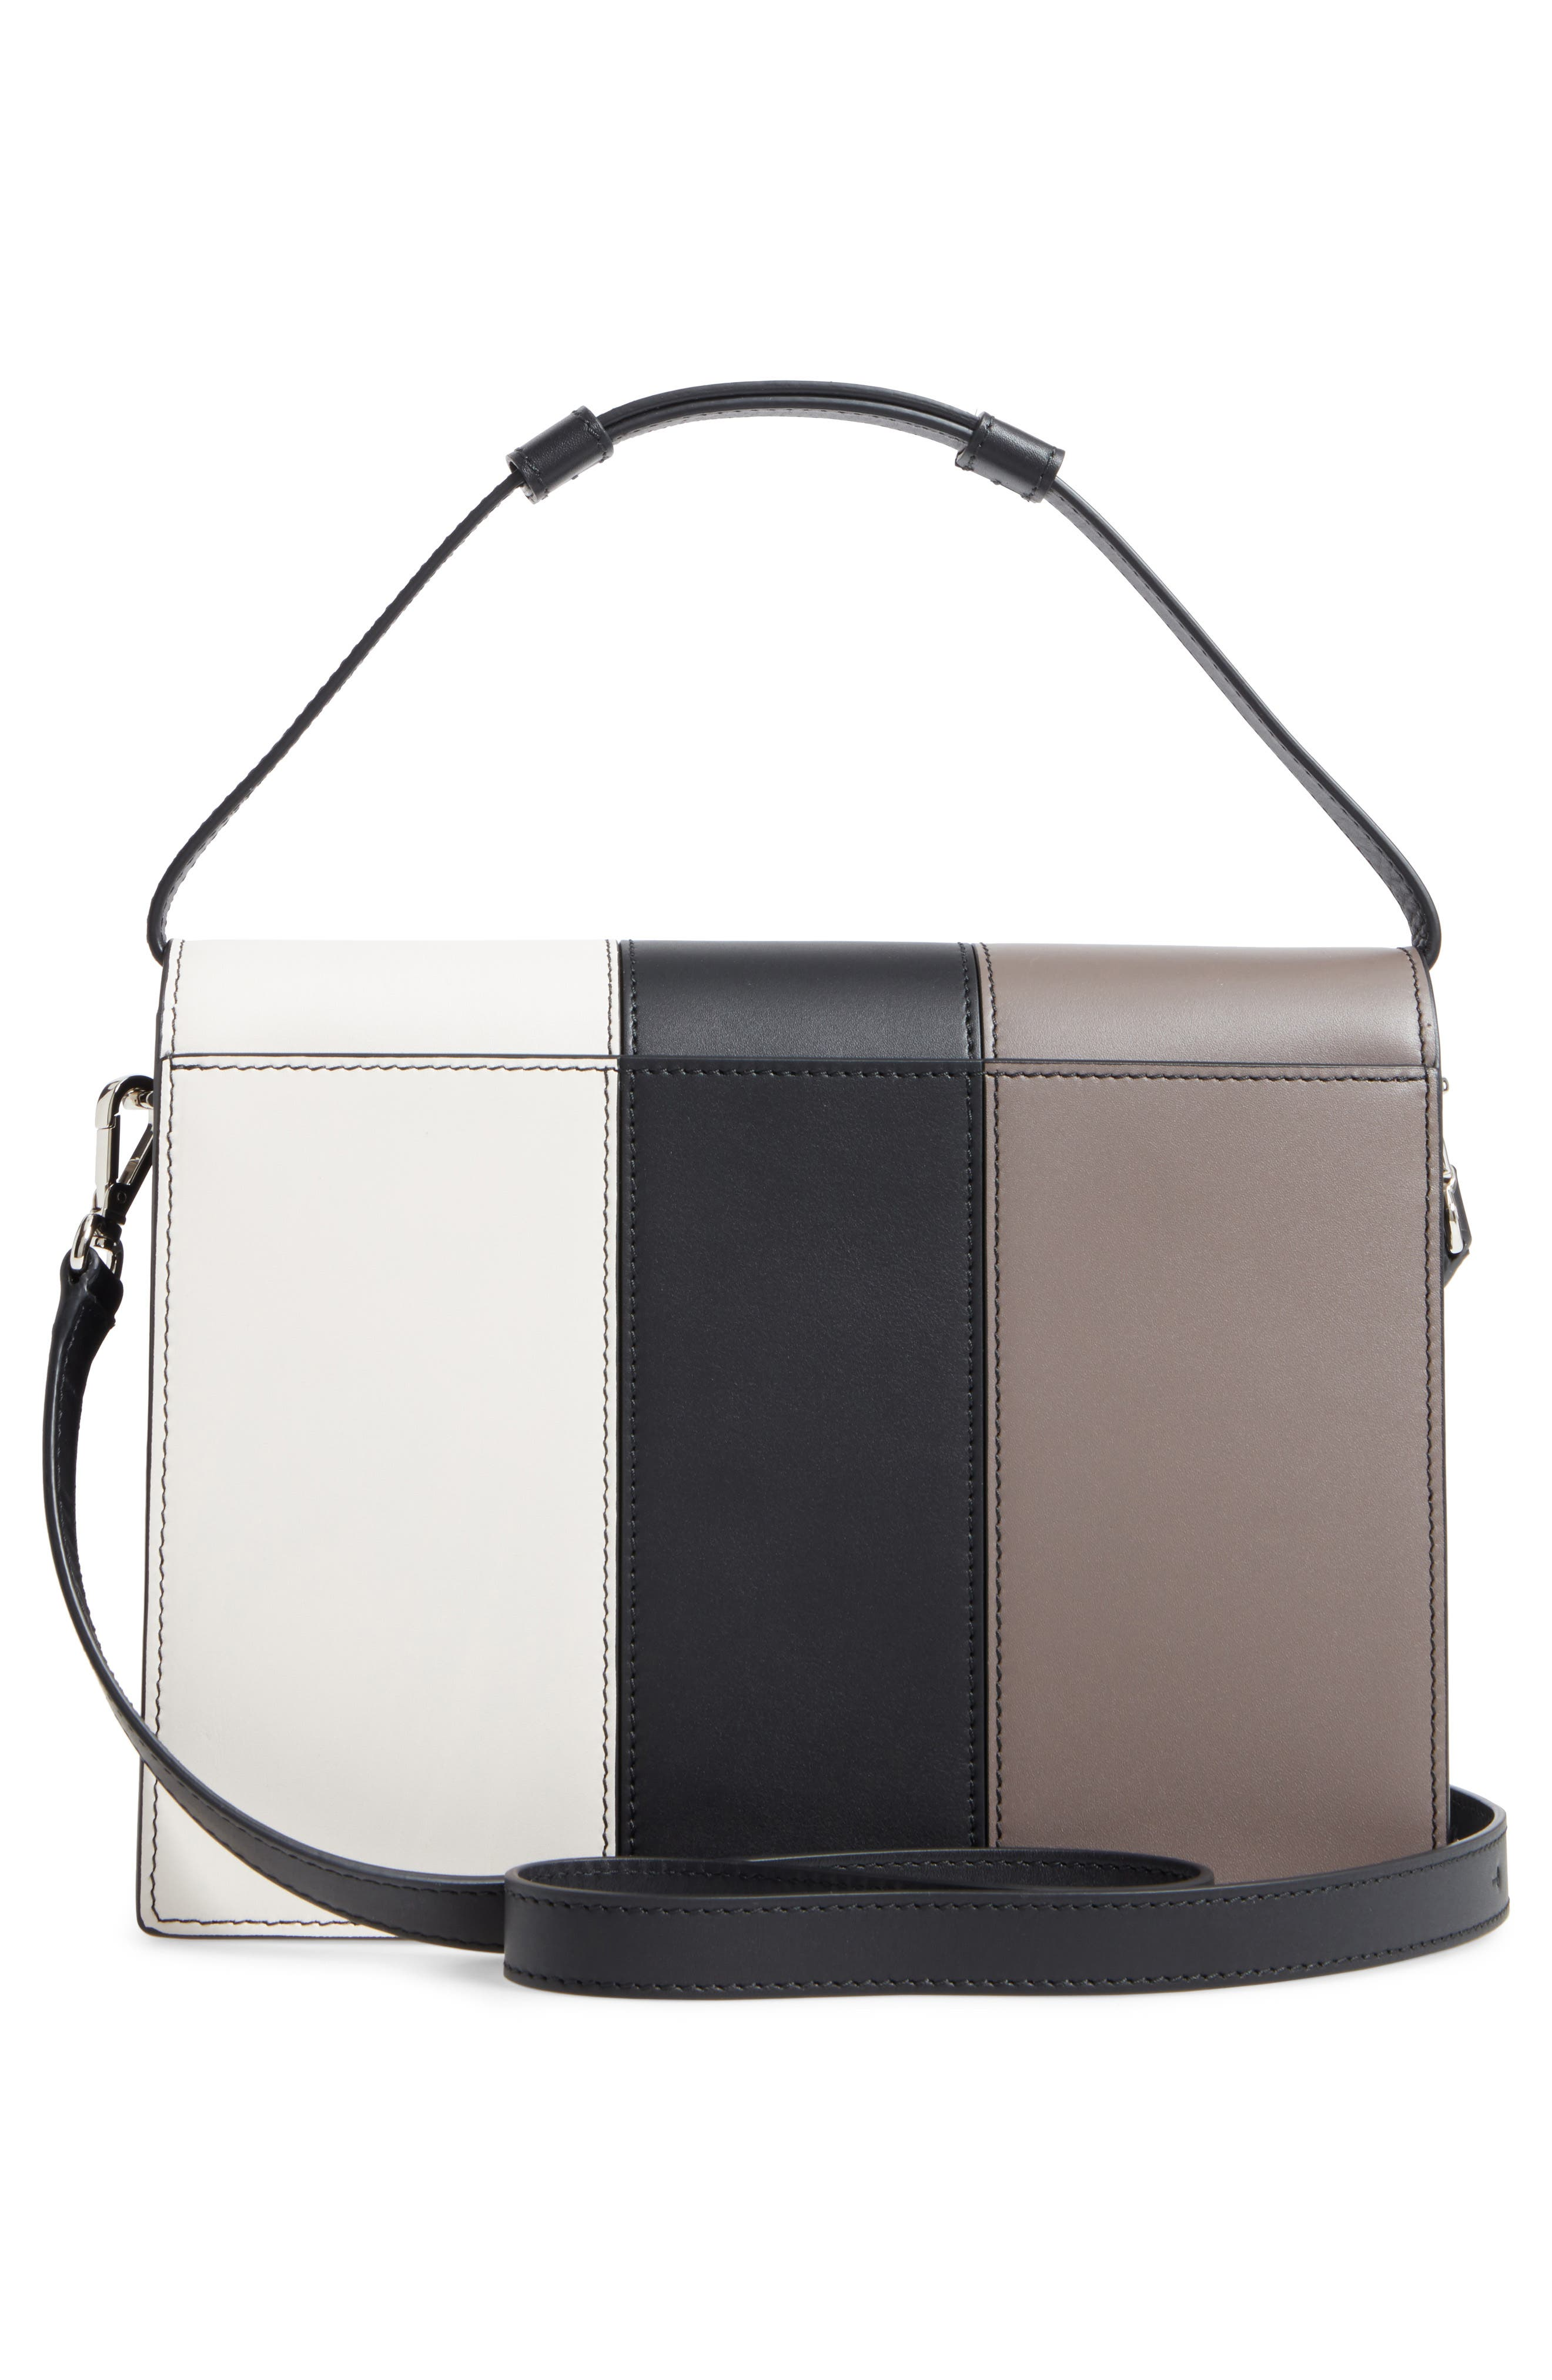 Alternate Image 2  - Max Mara Patchwork Butterfly Calfskin Leather Top Handle Satchel